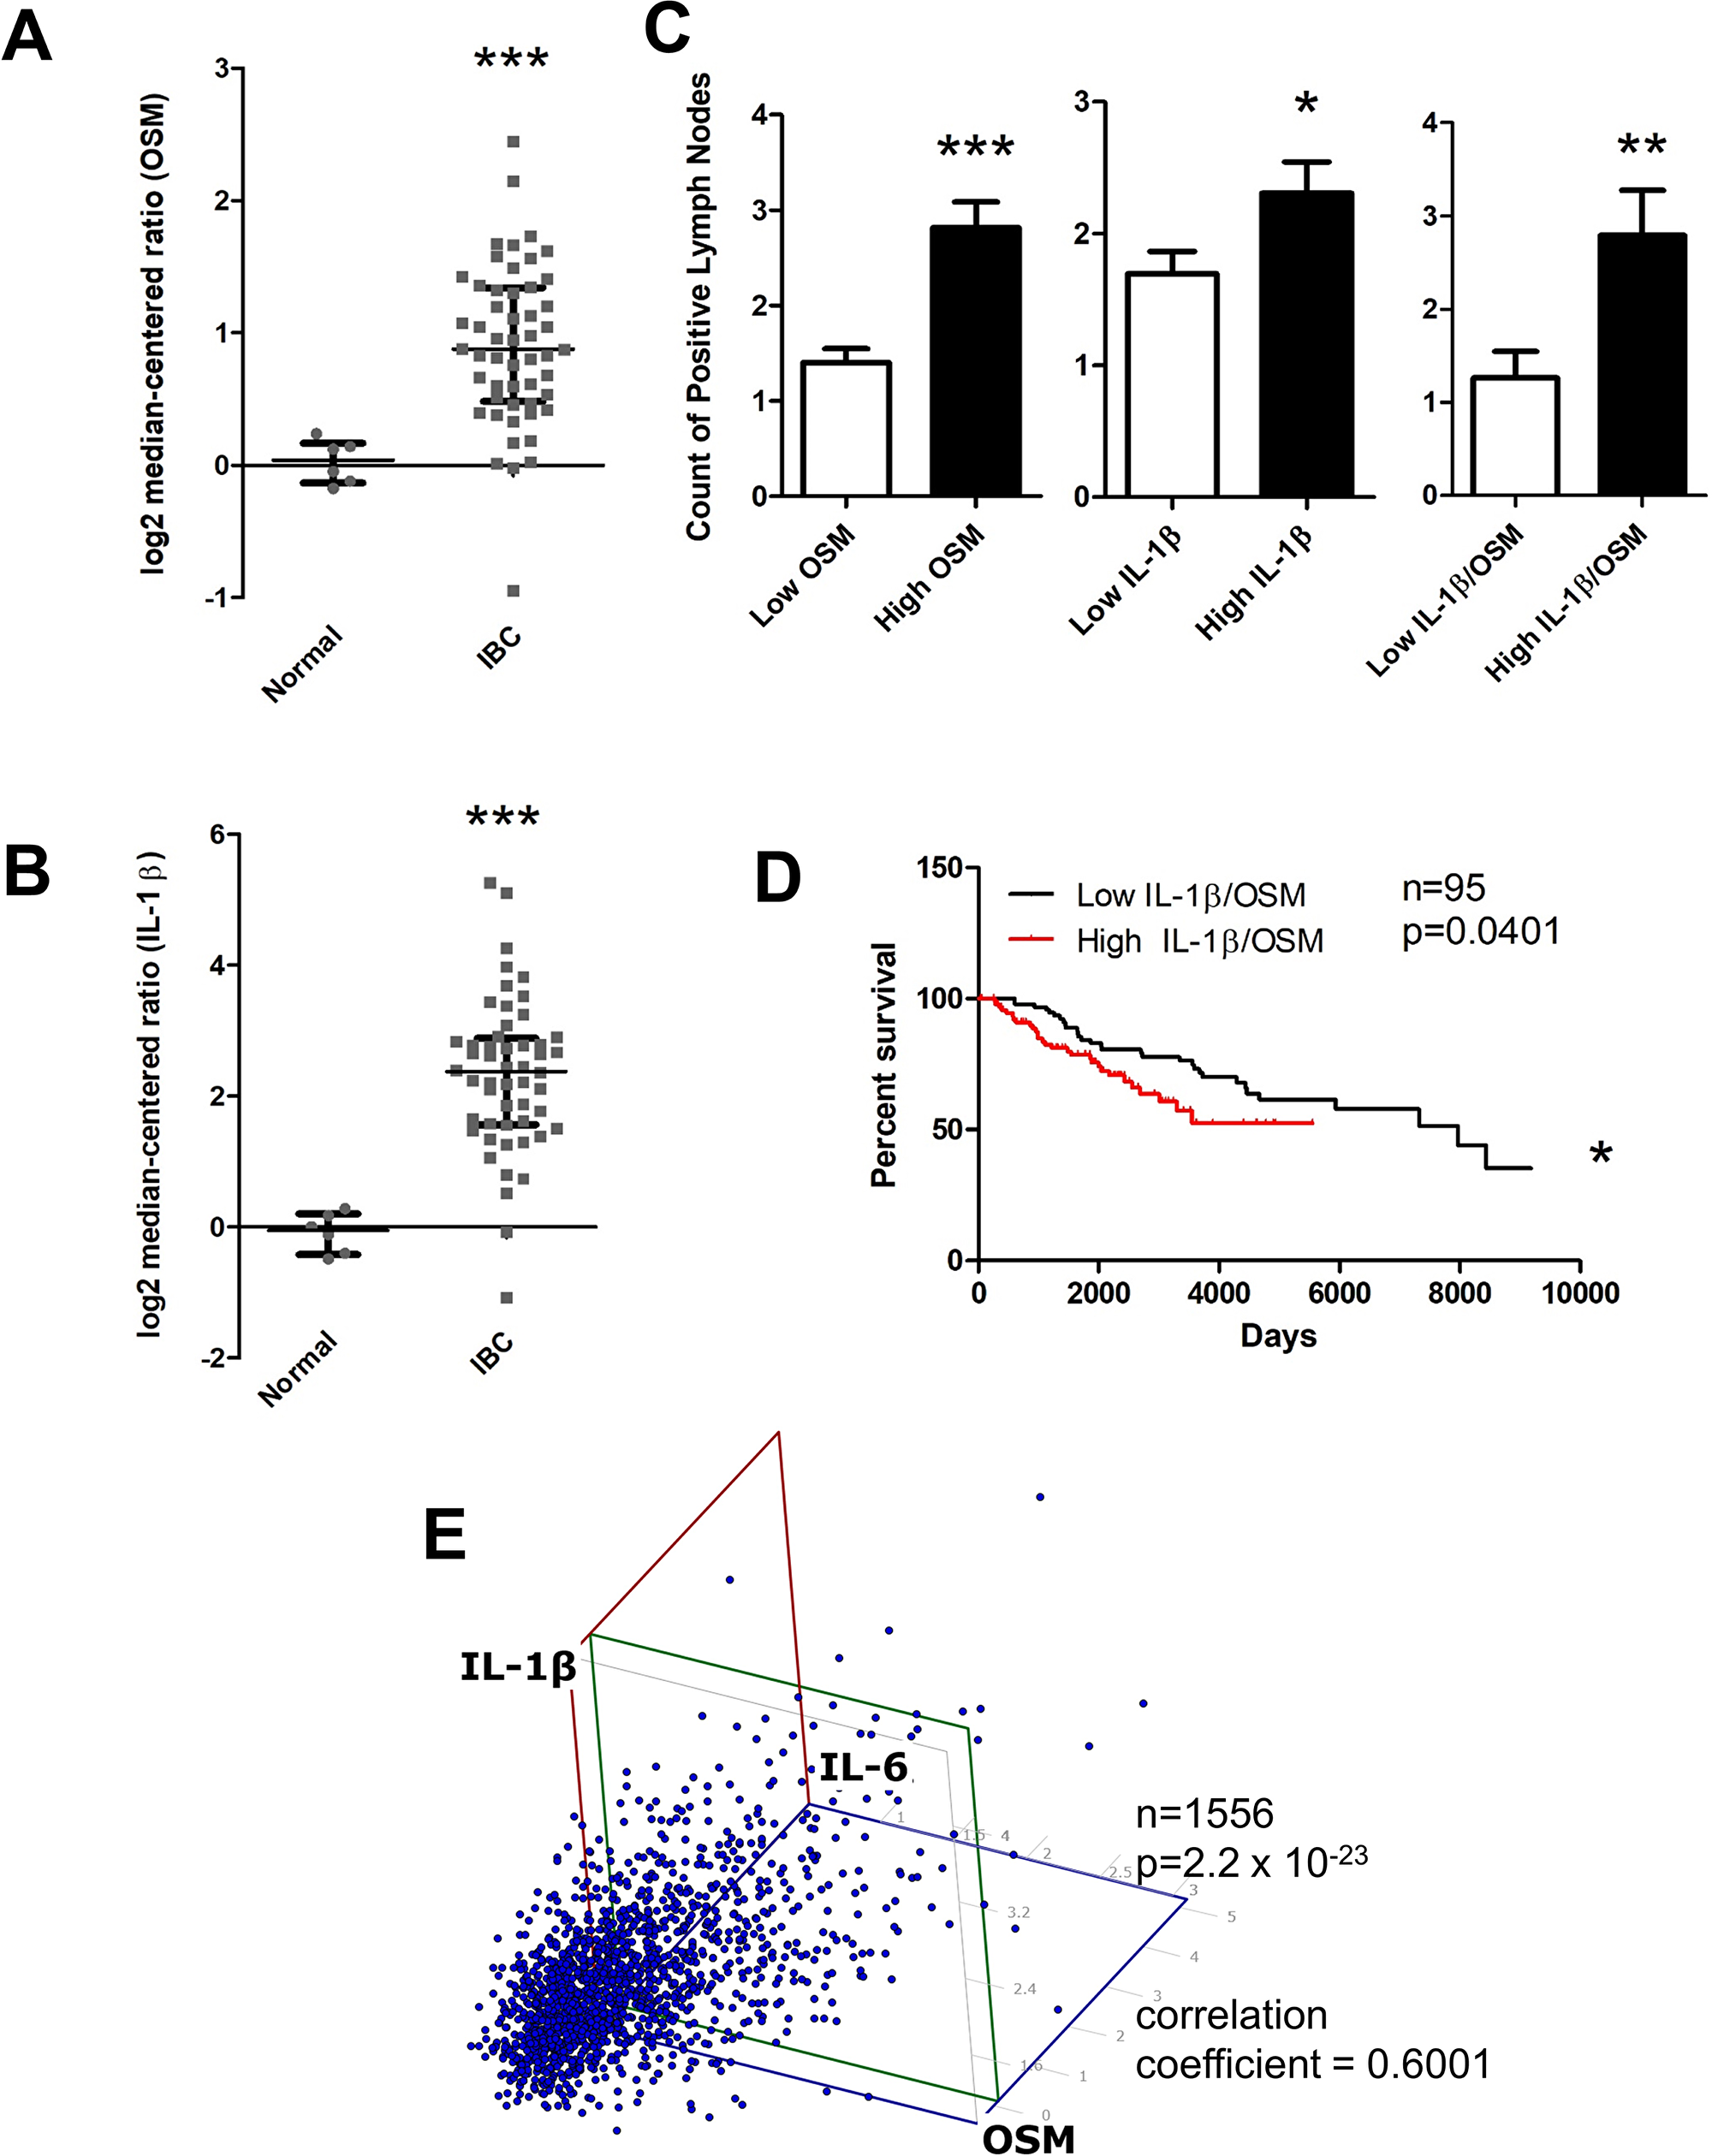 OSM and IL-1β expression is higher in invasive breast cancer compared to normal tissue and correlates with higher lymph node metastasis, decreased survival, and IL-6 levels.